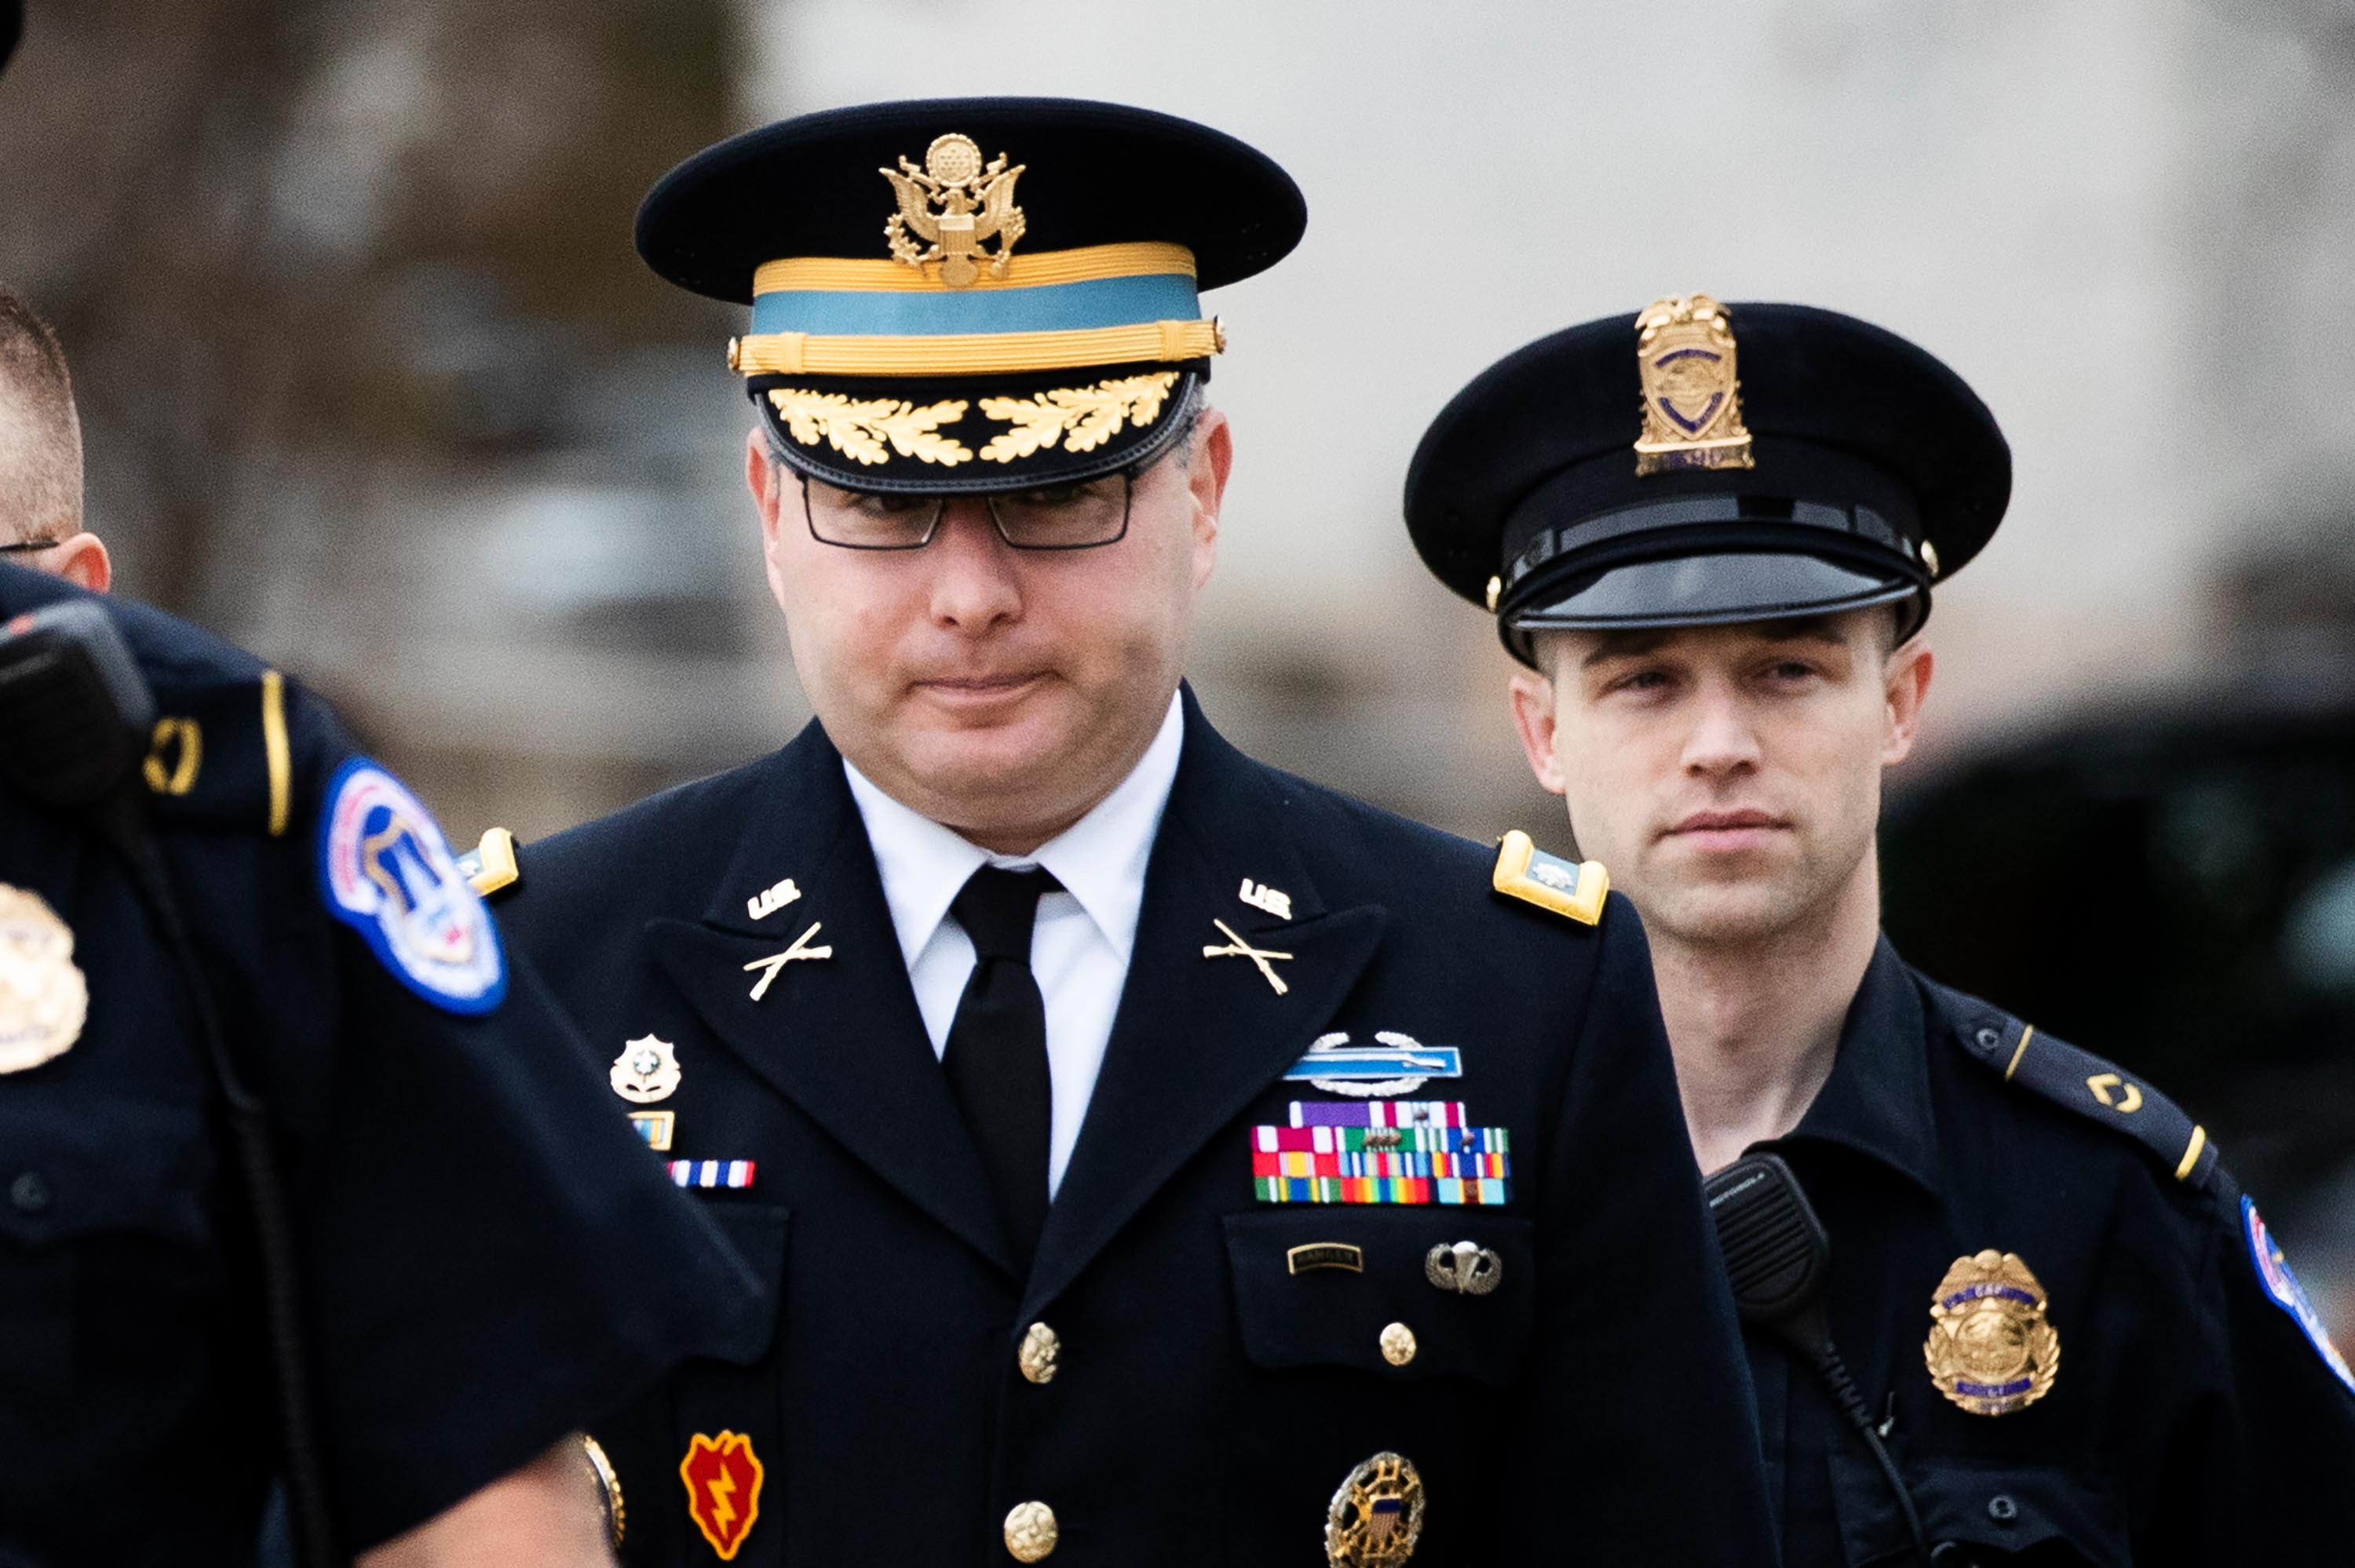 Army Lt. Col. Alexander Vindman, a member of the National Security Council, center, arrives on Capitol Hill in Washington on Oct. 29.